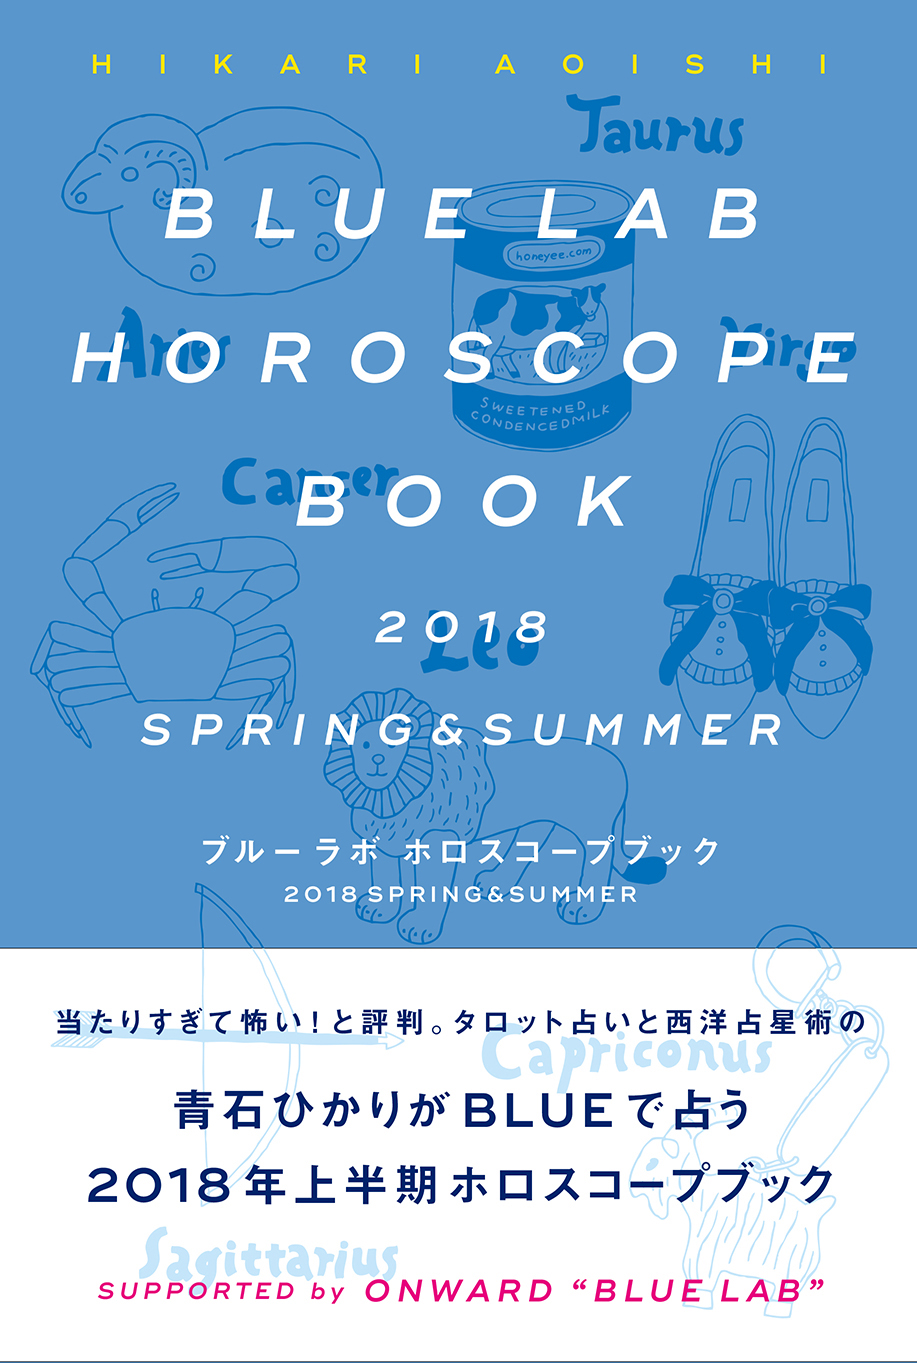 BLUE LAB HOROSCOPE BOOK 2018 SPRING & SUMMER